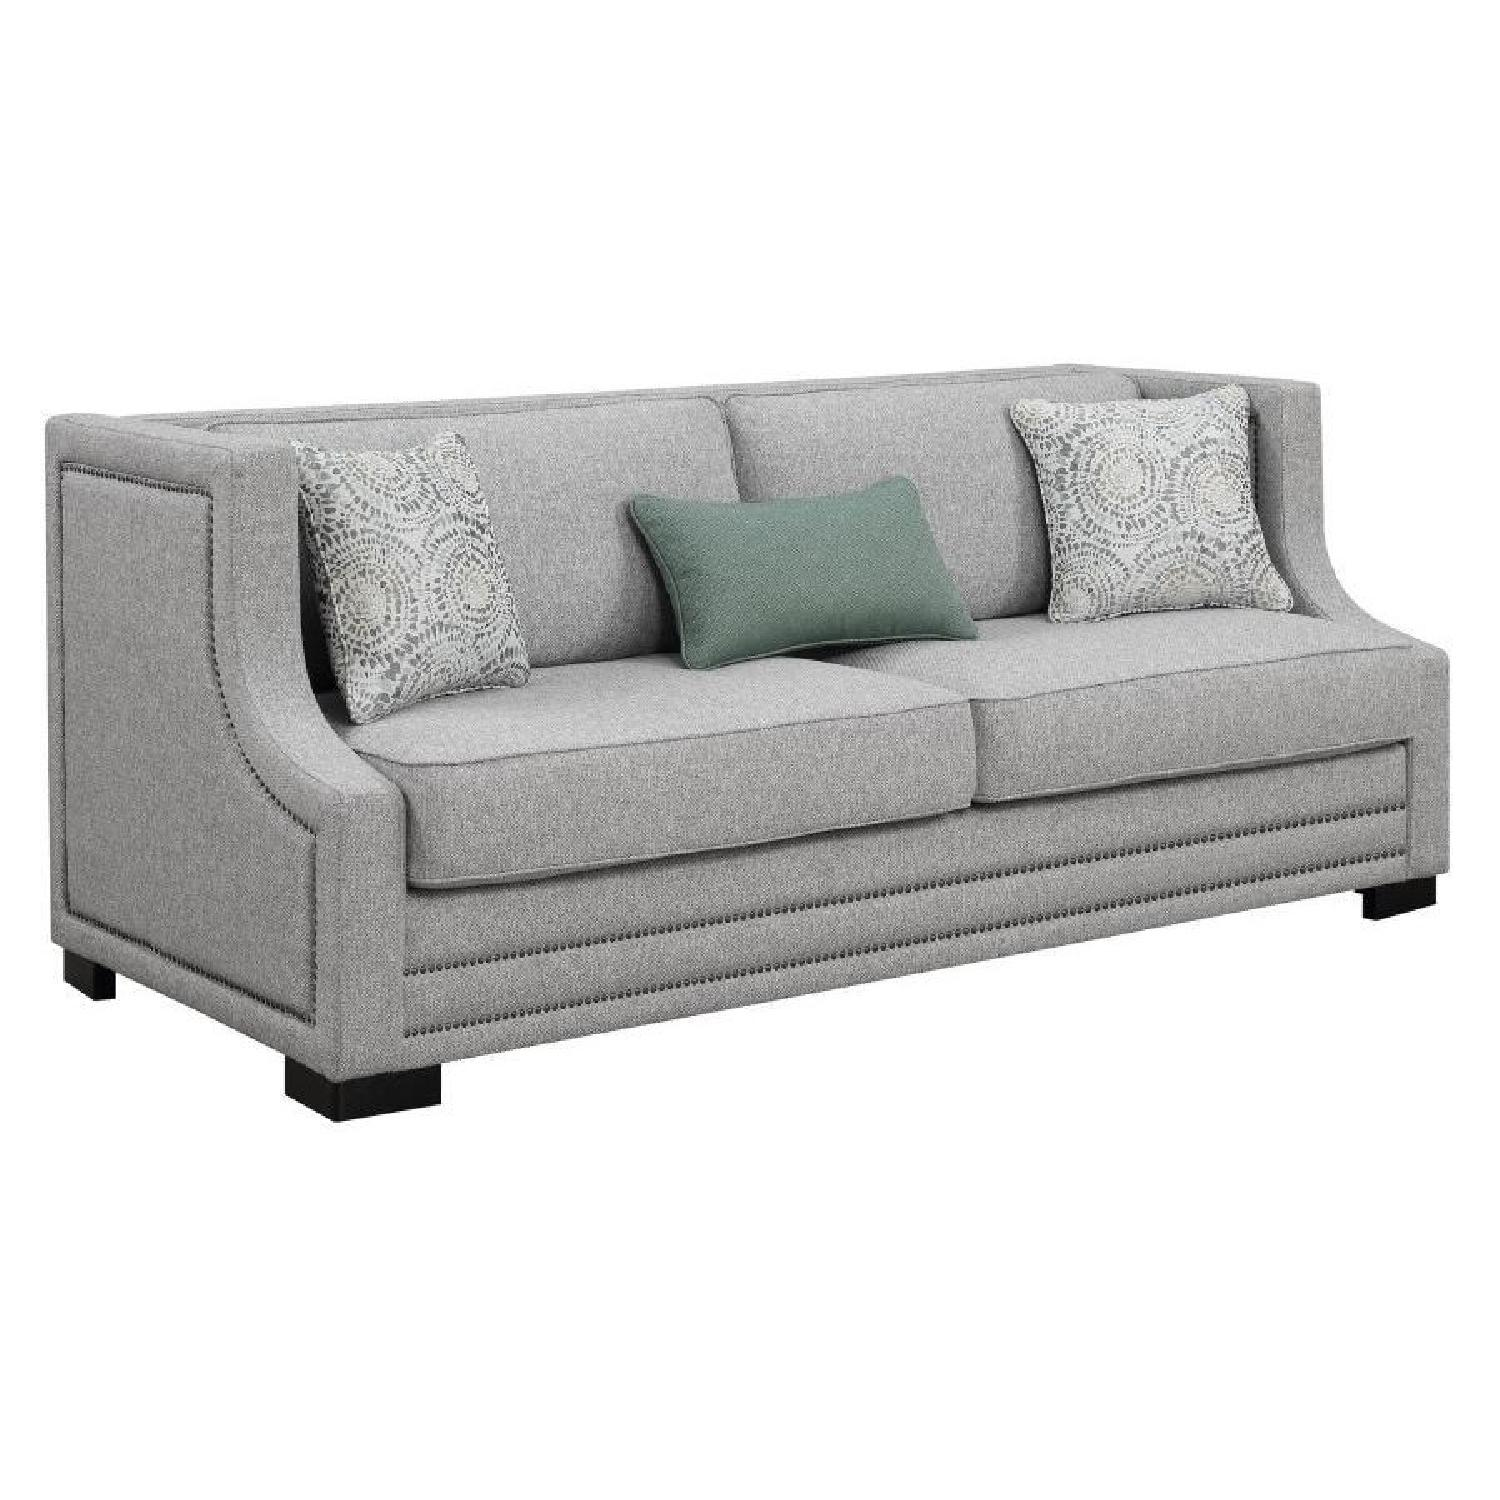 Square Sofa Light Grey Fabric Sofa W Square Frame Sloping Arms